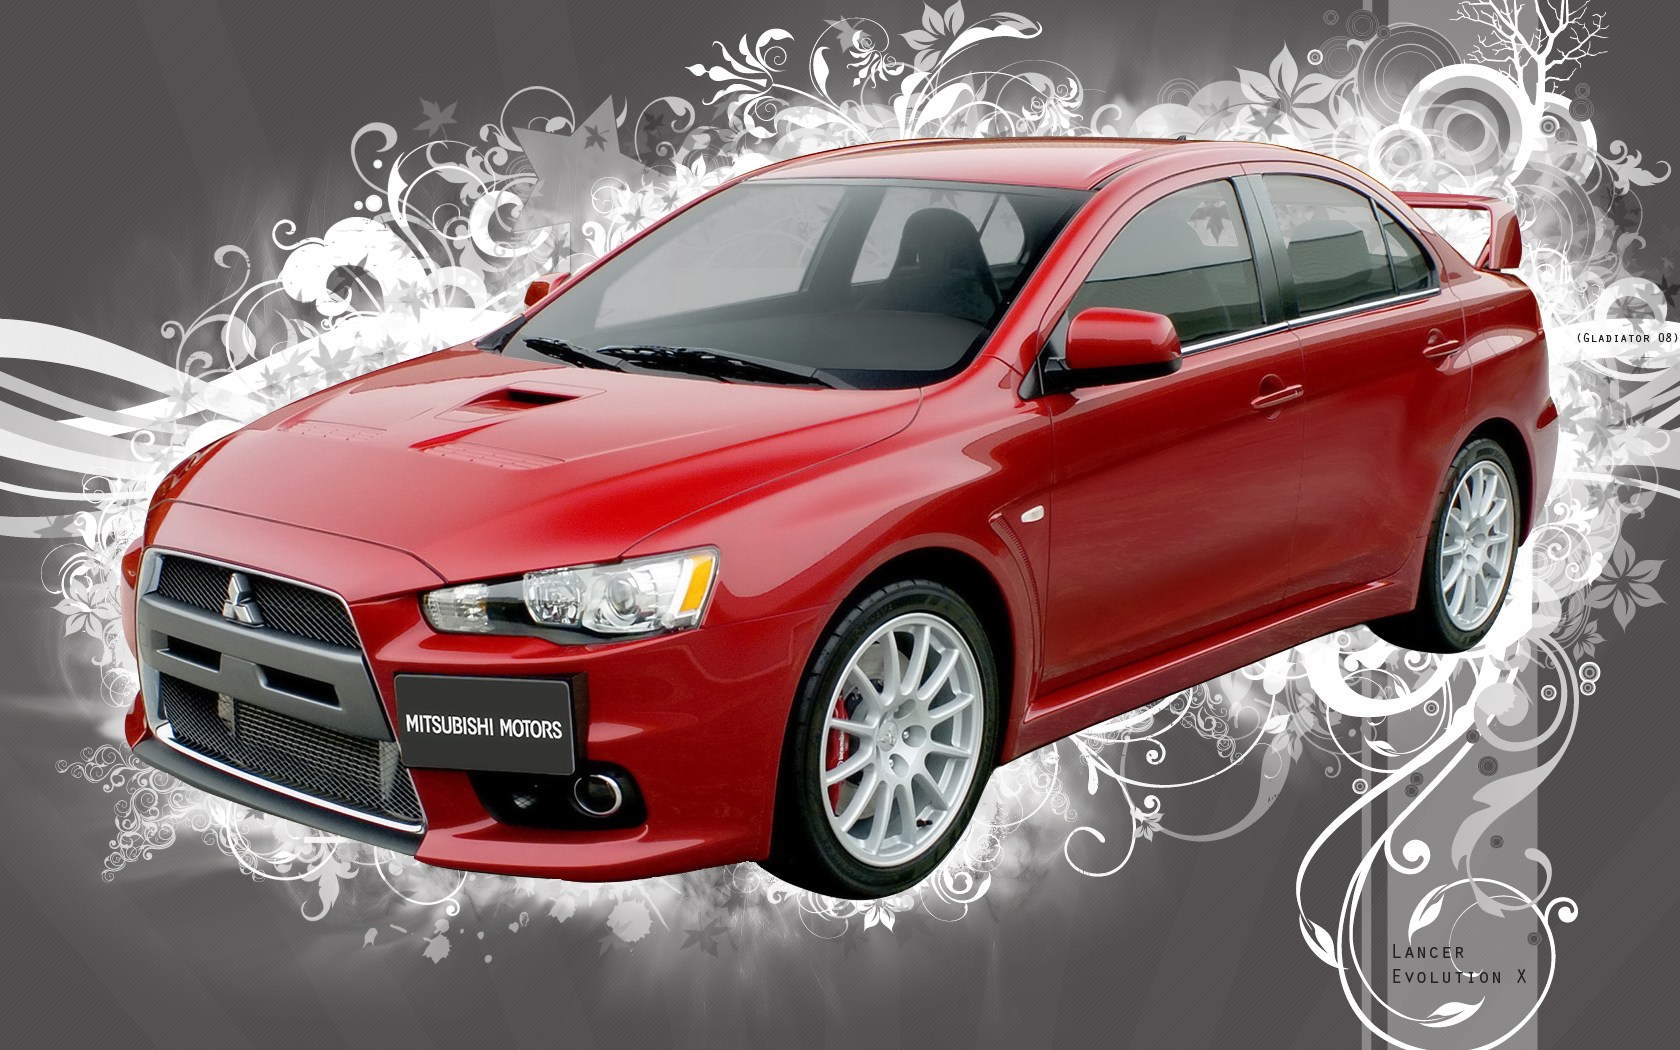 Mitsubishi Lancer Evolution X An awesome image of High Resolution Picture